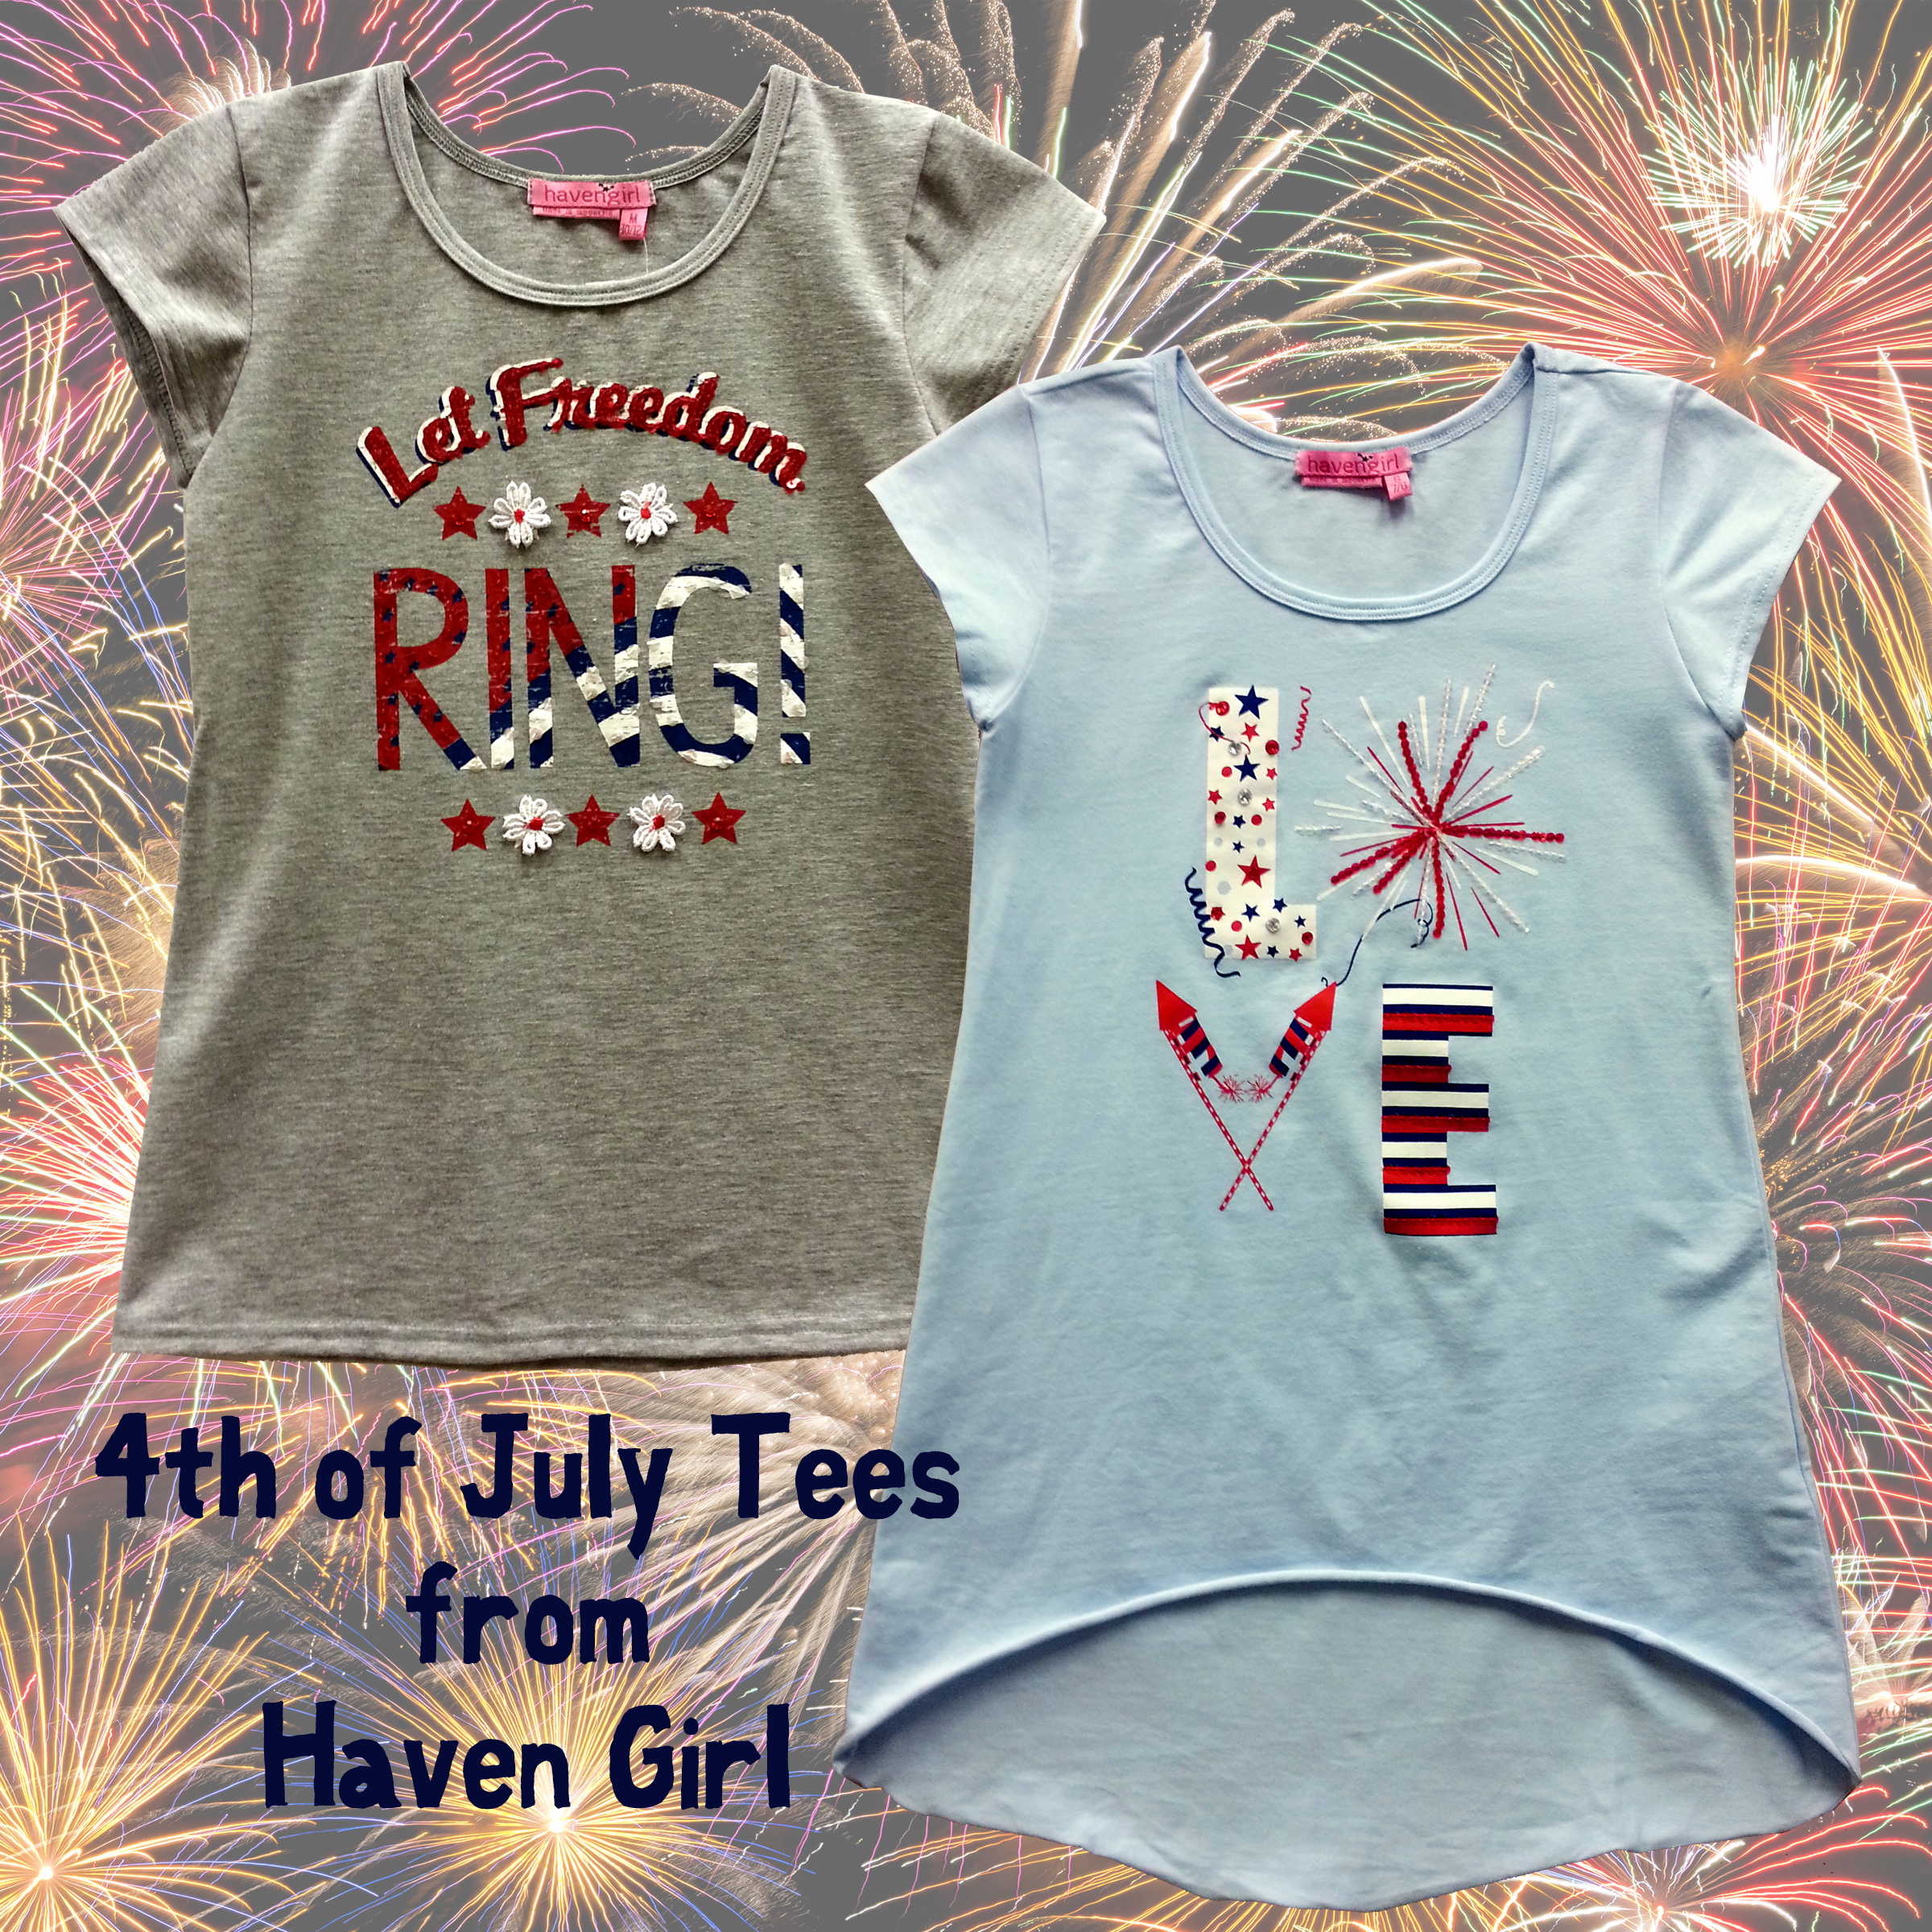 july 4 tees haven girl